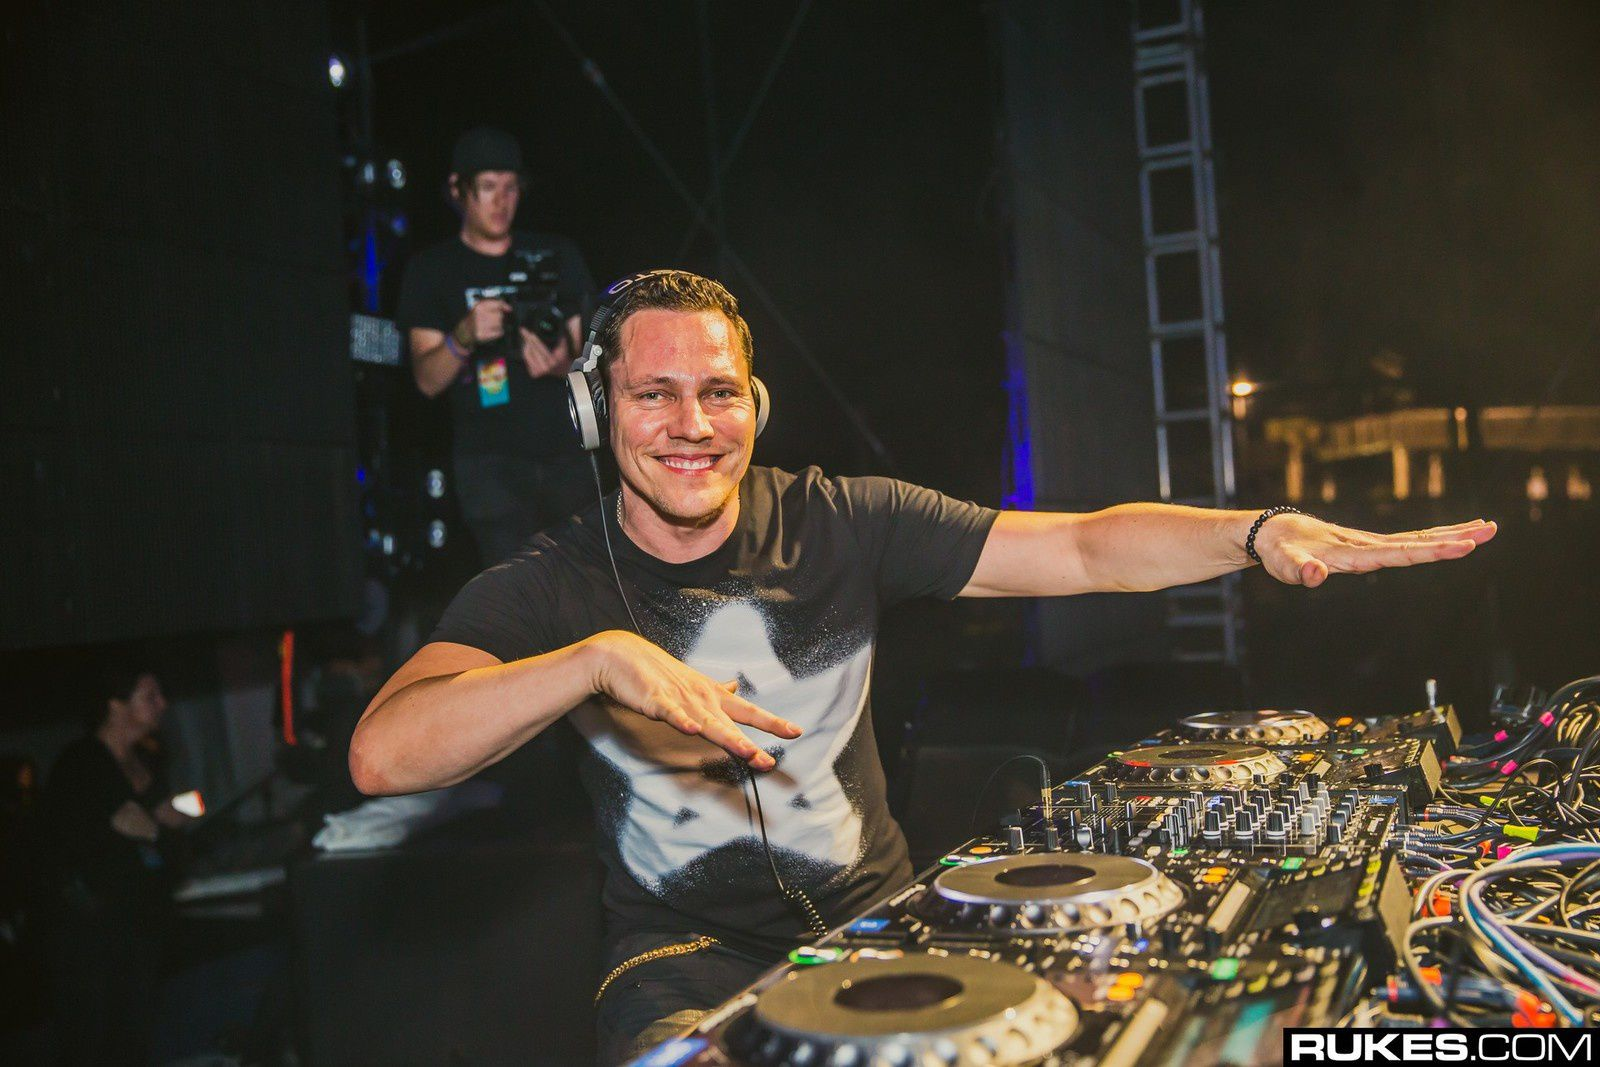 Tiësto photos: U.M.E - South Padre Island, TX - March 21, 2015